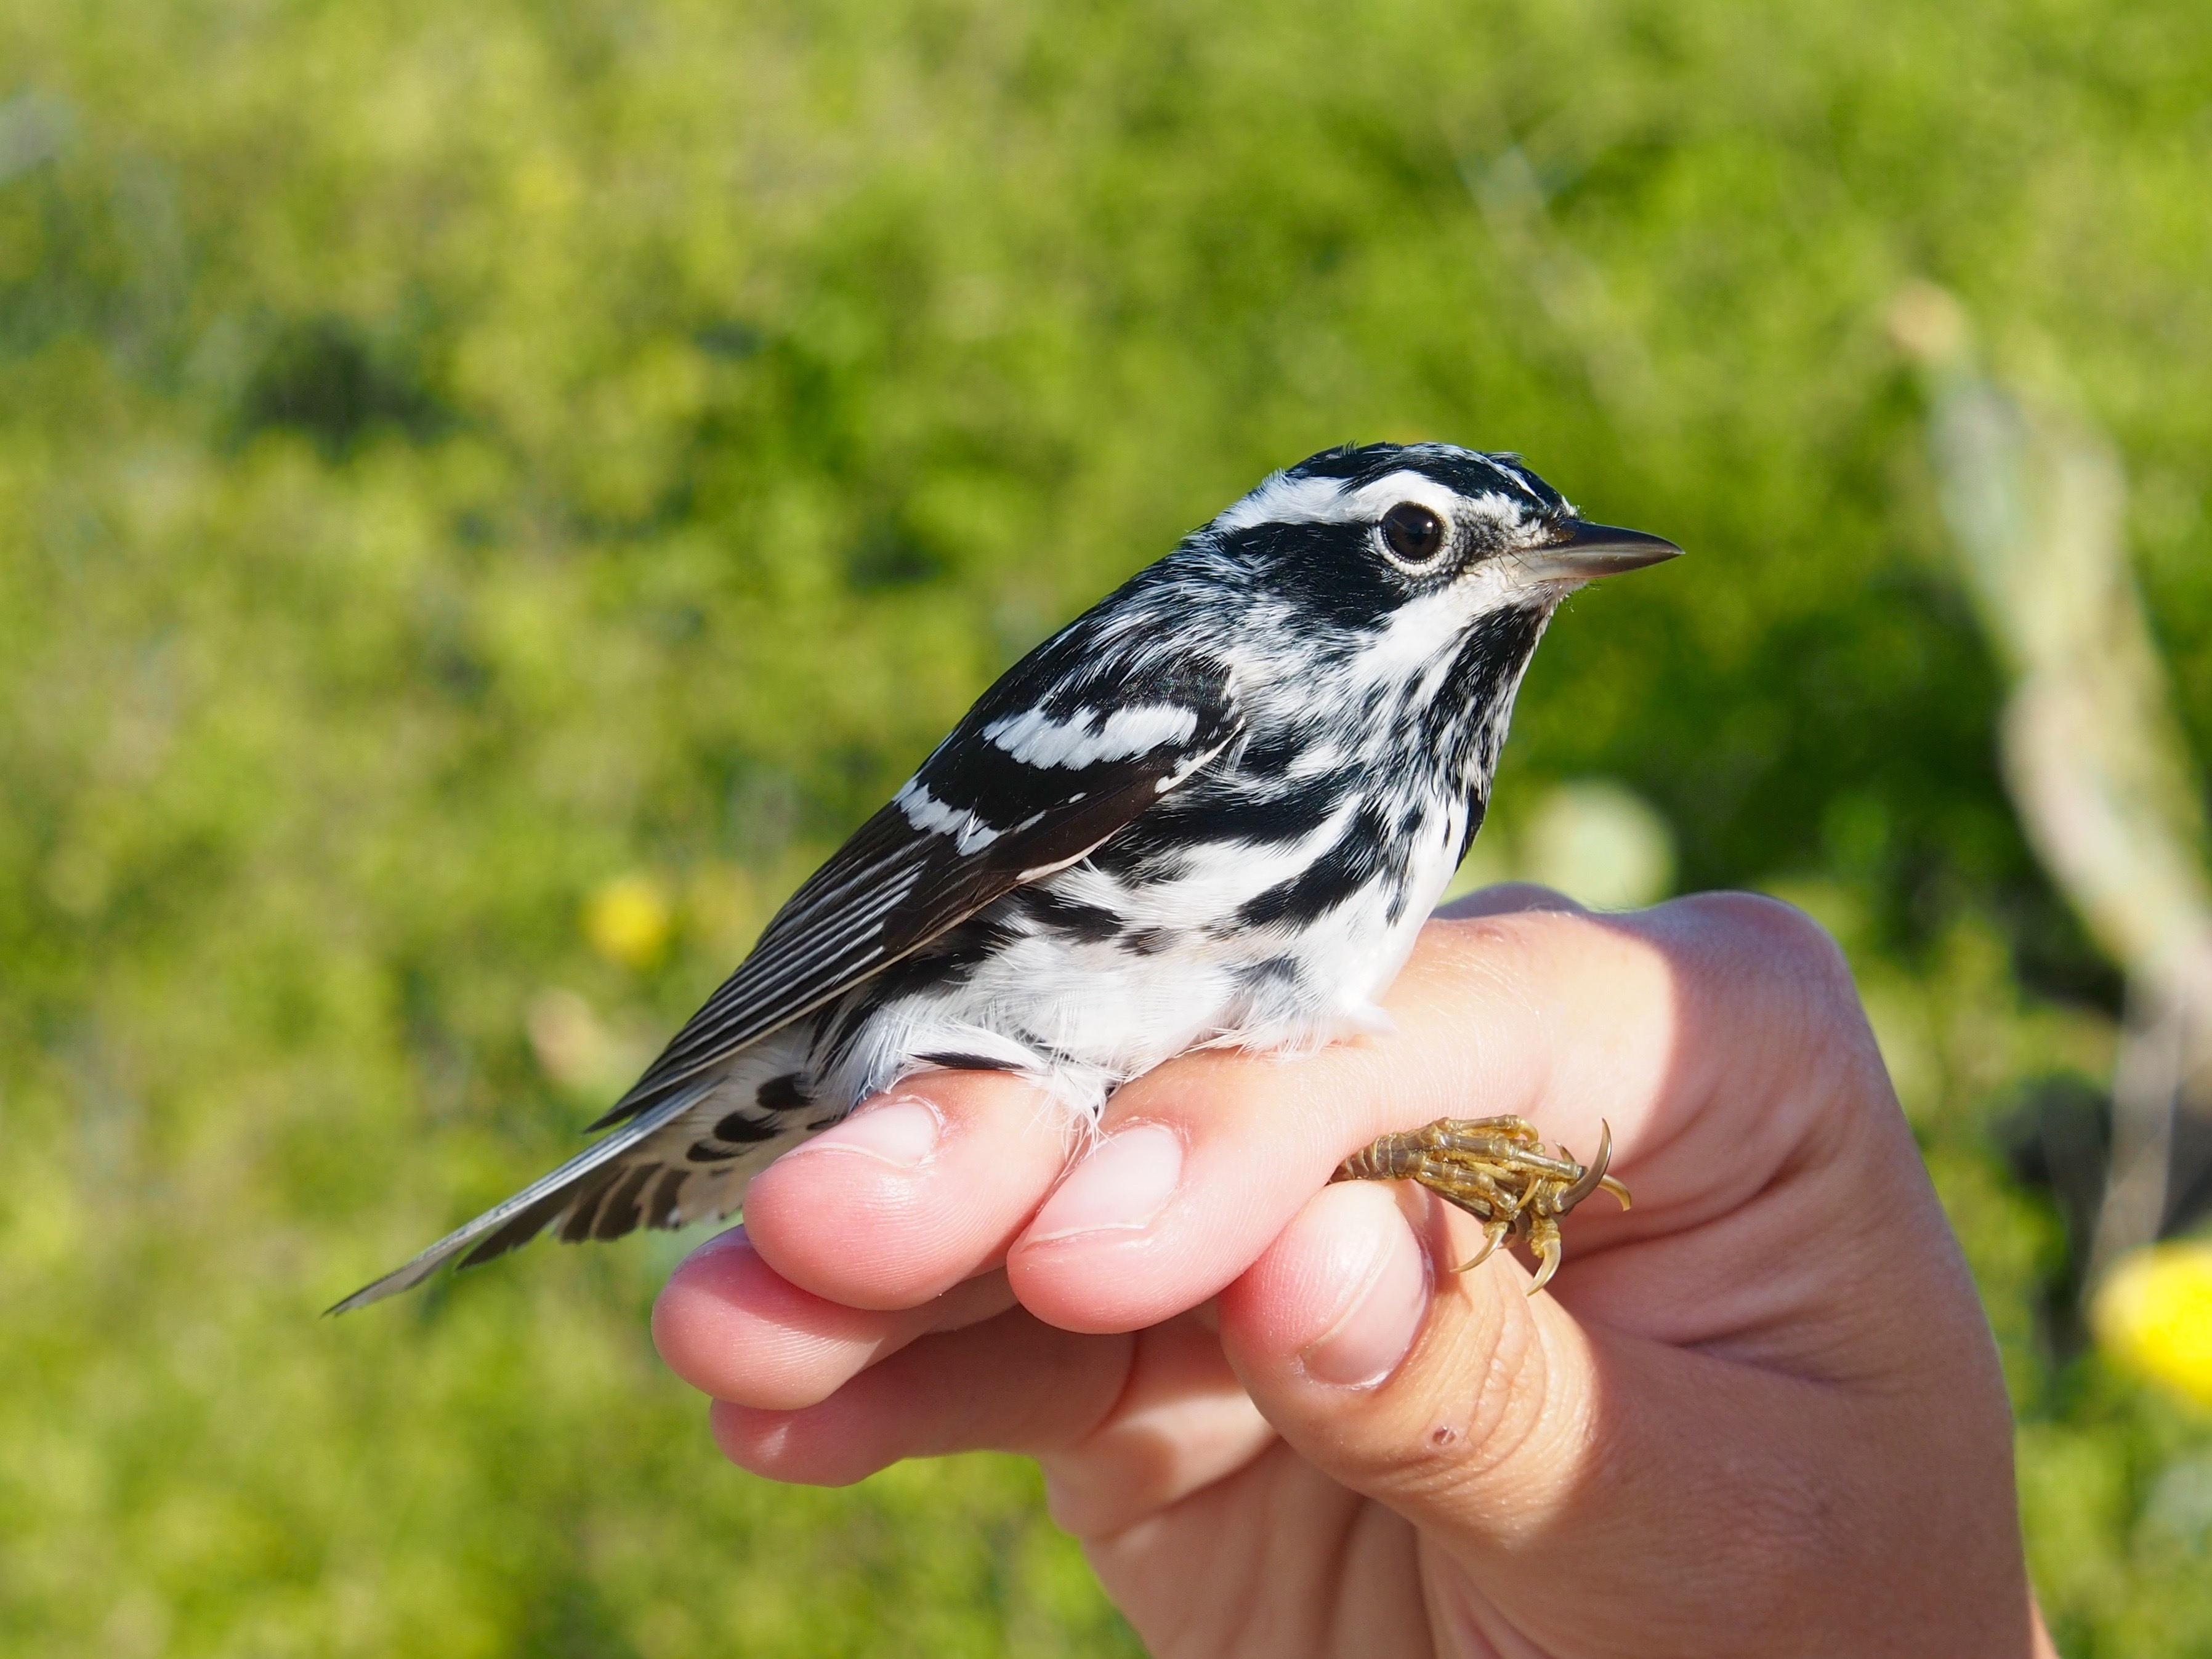 A black and white warbler perches on someone's hand